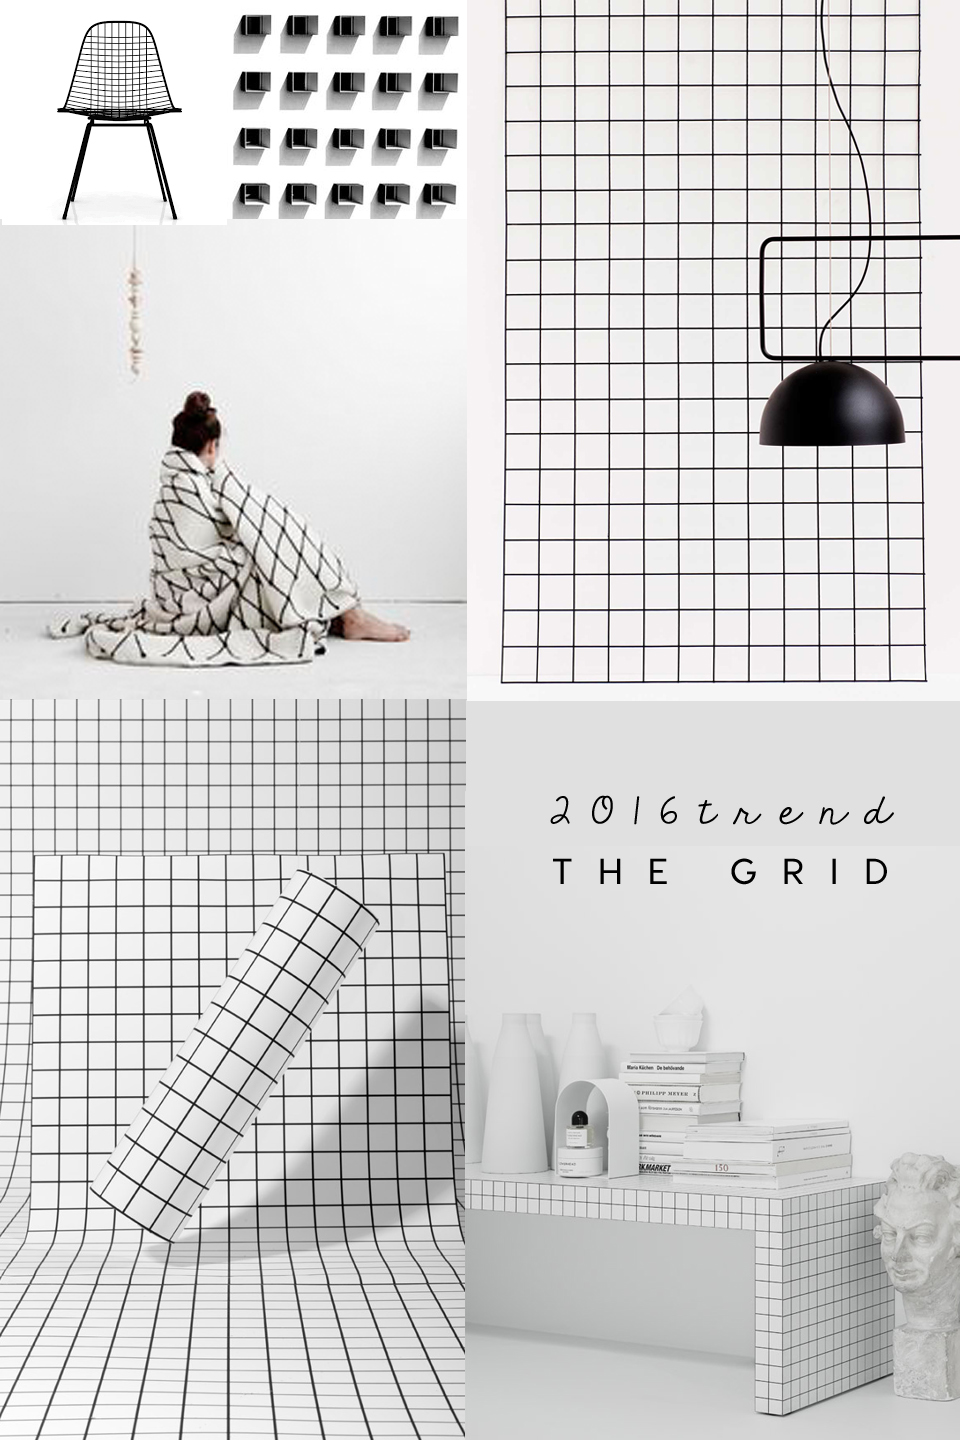 grid interior trend, grid design, grid pattern. grid black white, trendpotting 2016, interior trends 2016, ITALIANBARK interior design blog